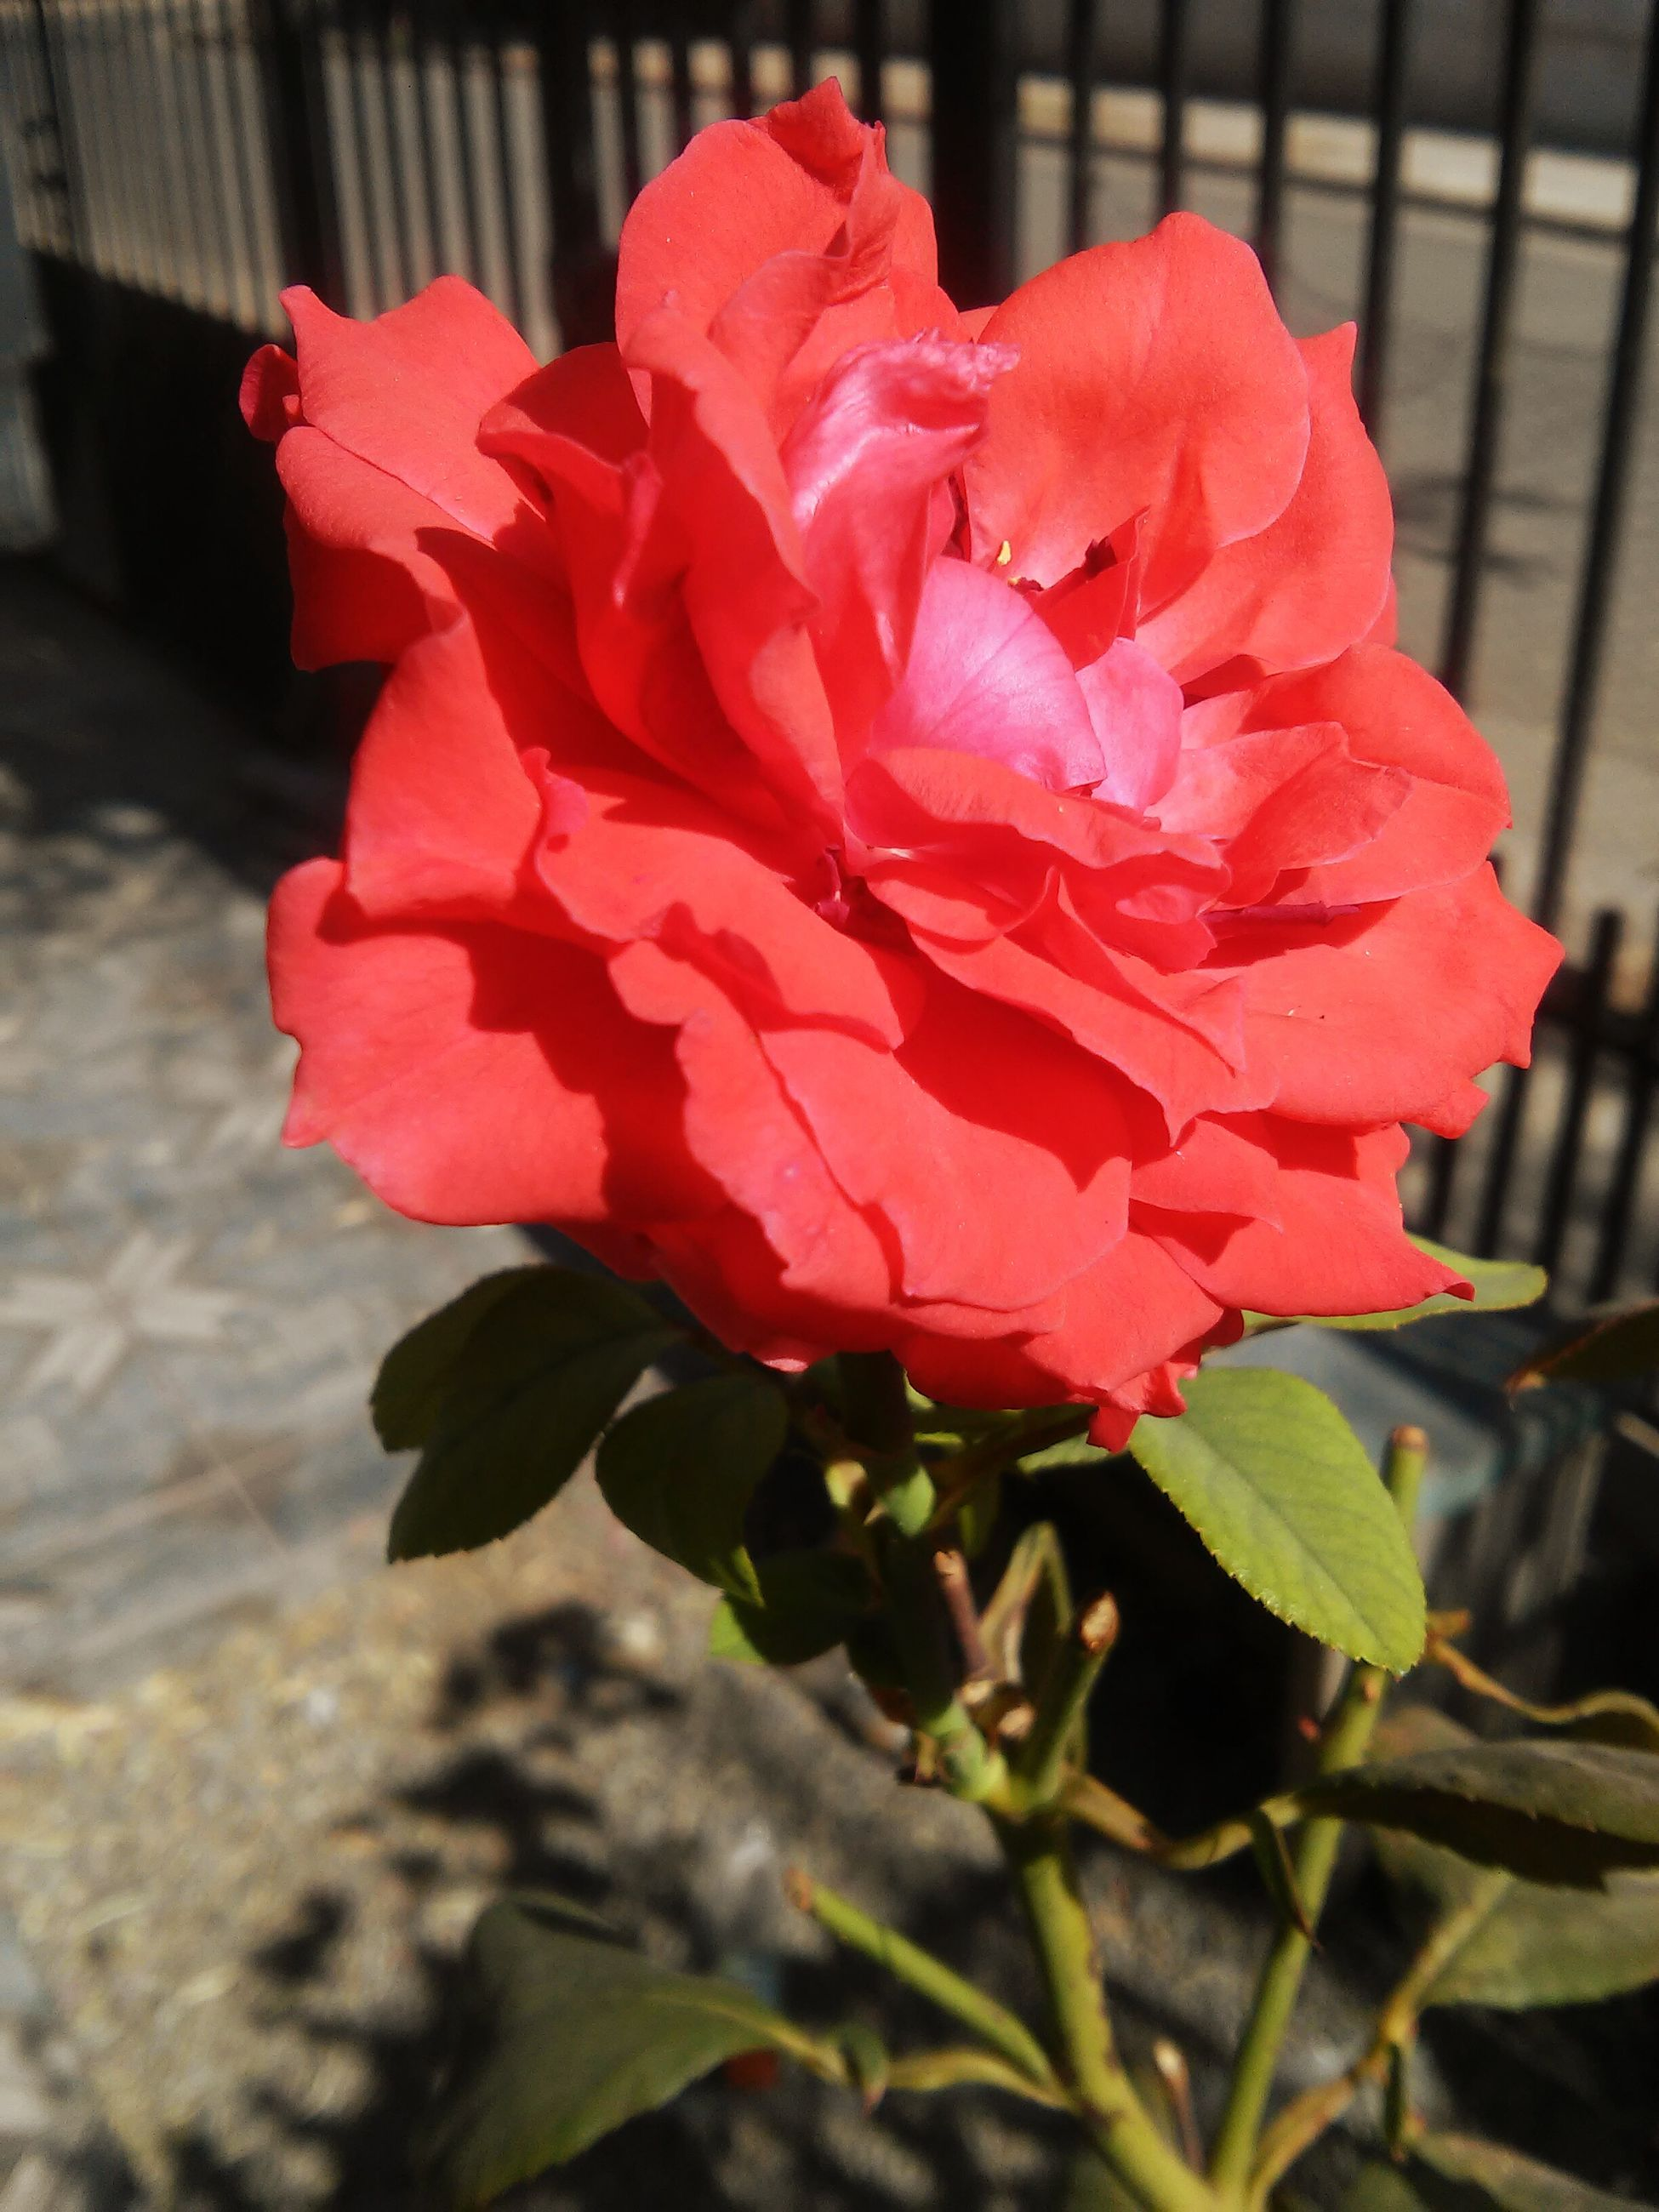 flower, petal, flower head, fragility, red, freshness, close-up, growth, plant, beauty in nature, focus on foreground, blooming, rose - flower, leaf, nature, single flower, day, in bloom, no people, outdoors